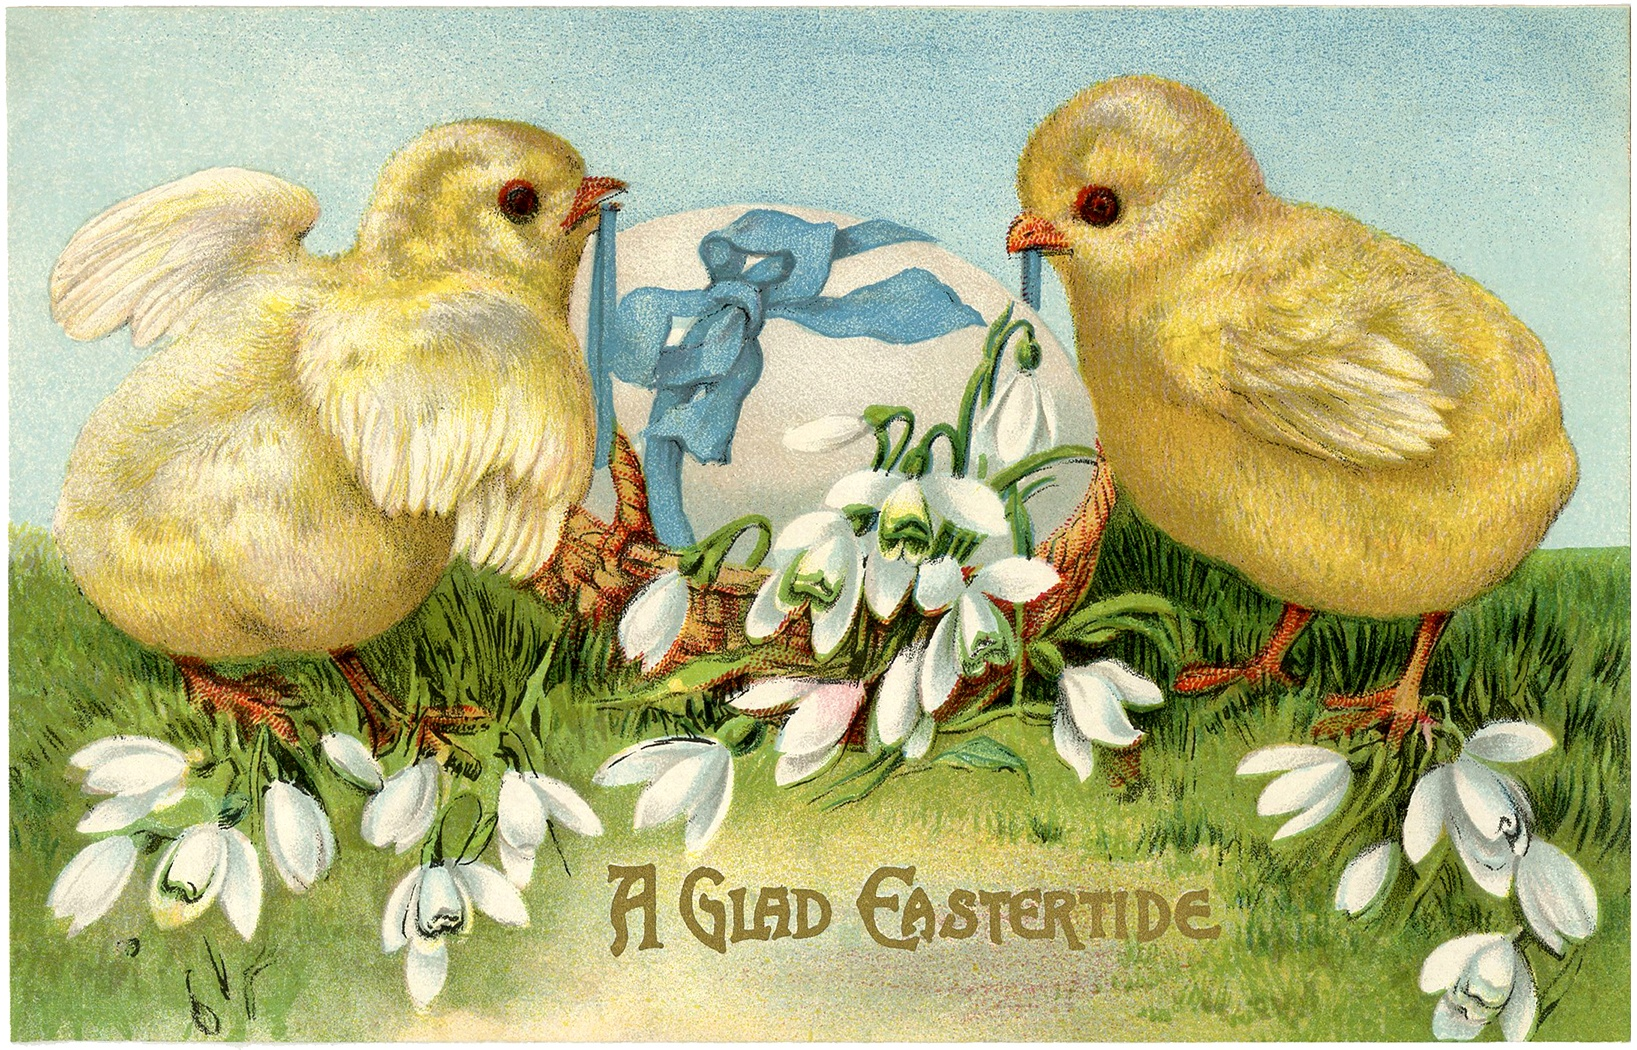 Free Printable Easter Greeting Cards - Azfreebies - Printable Easter Greeting Cards Free